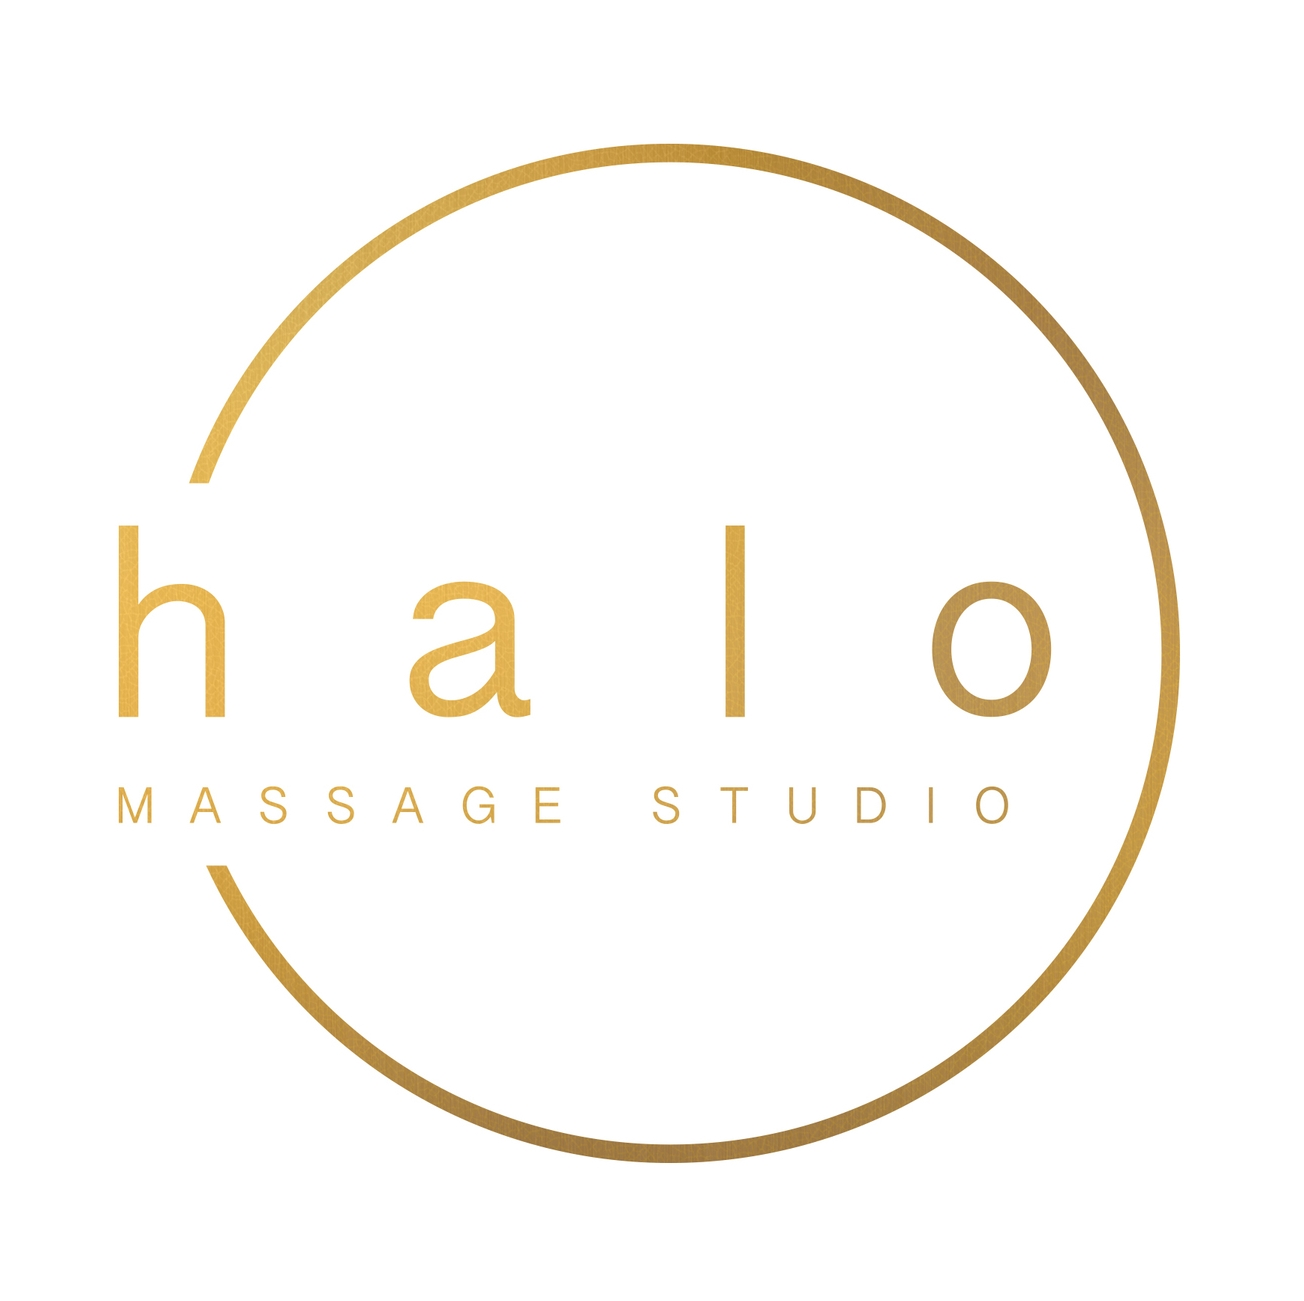 Halo Massage Studio